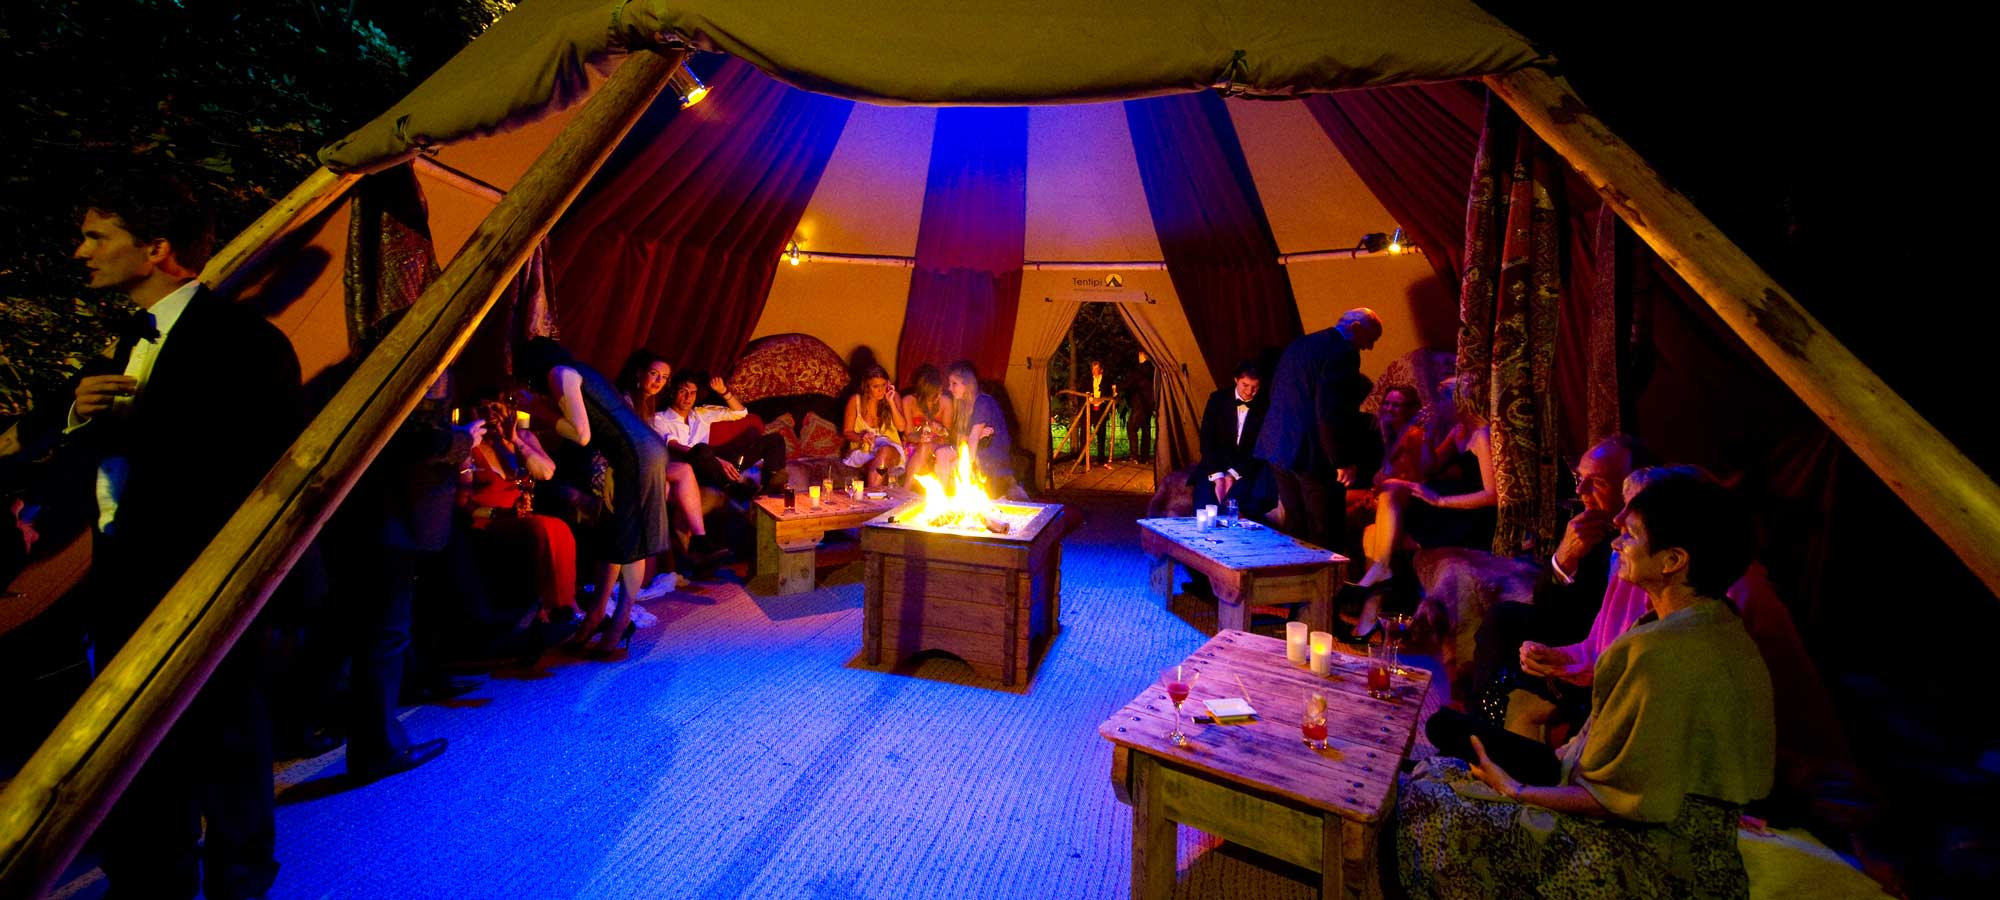 Tentipi event interior - giant hat tipi to buy